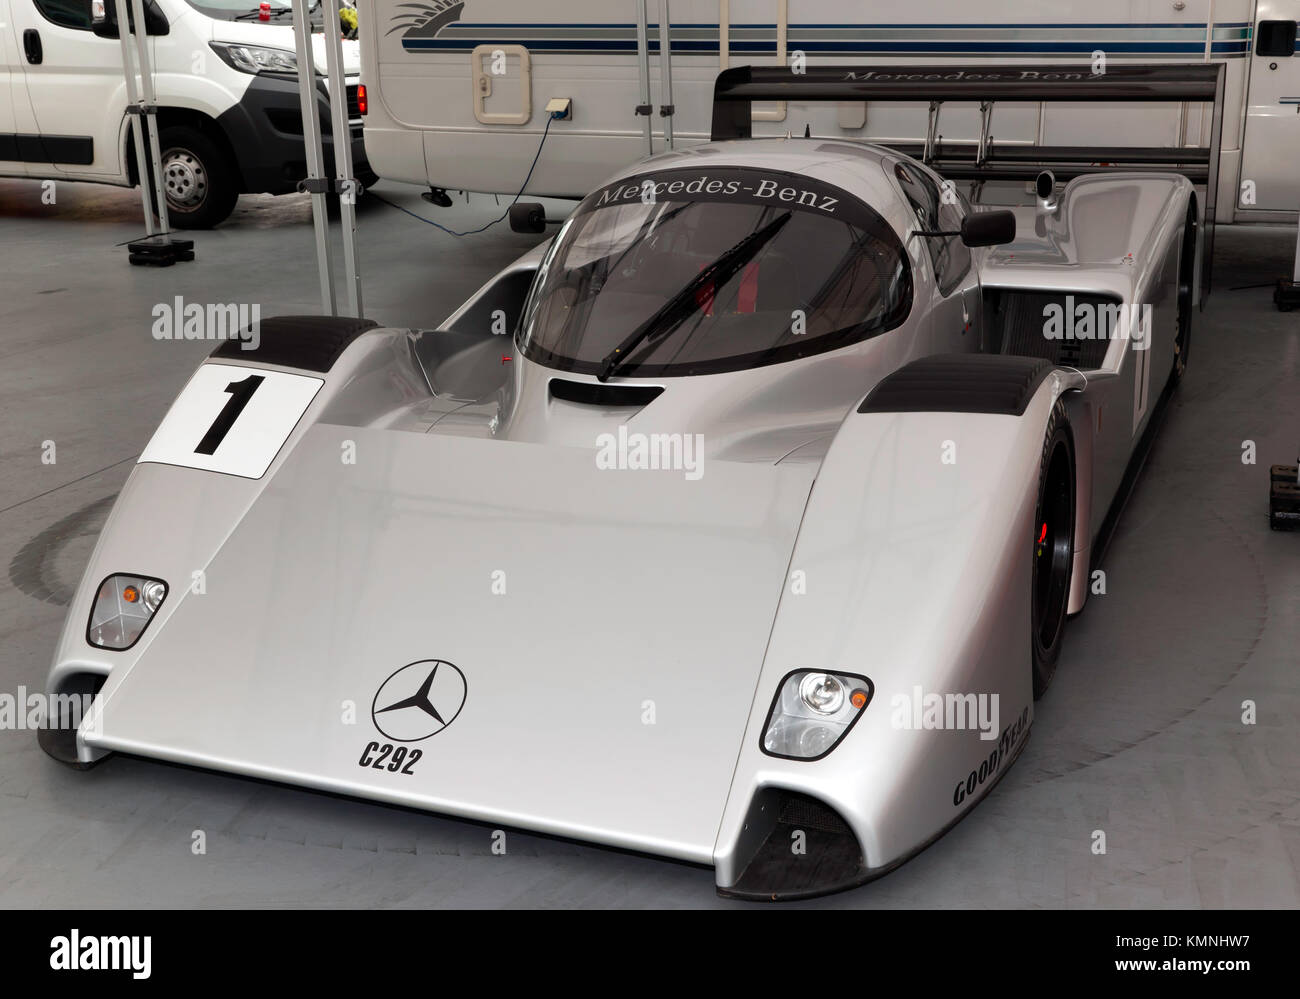 View of the Mercedes-Benz,  C292 Group C prototype race car, on display in the International Pits during the 2017 - Stock Image